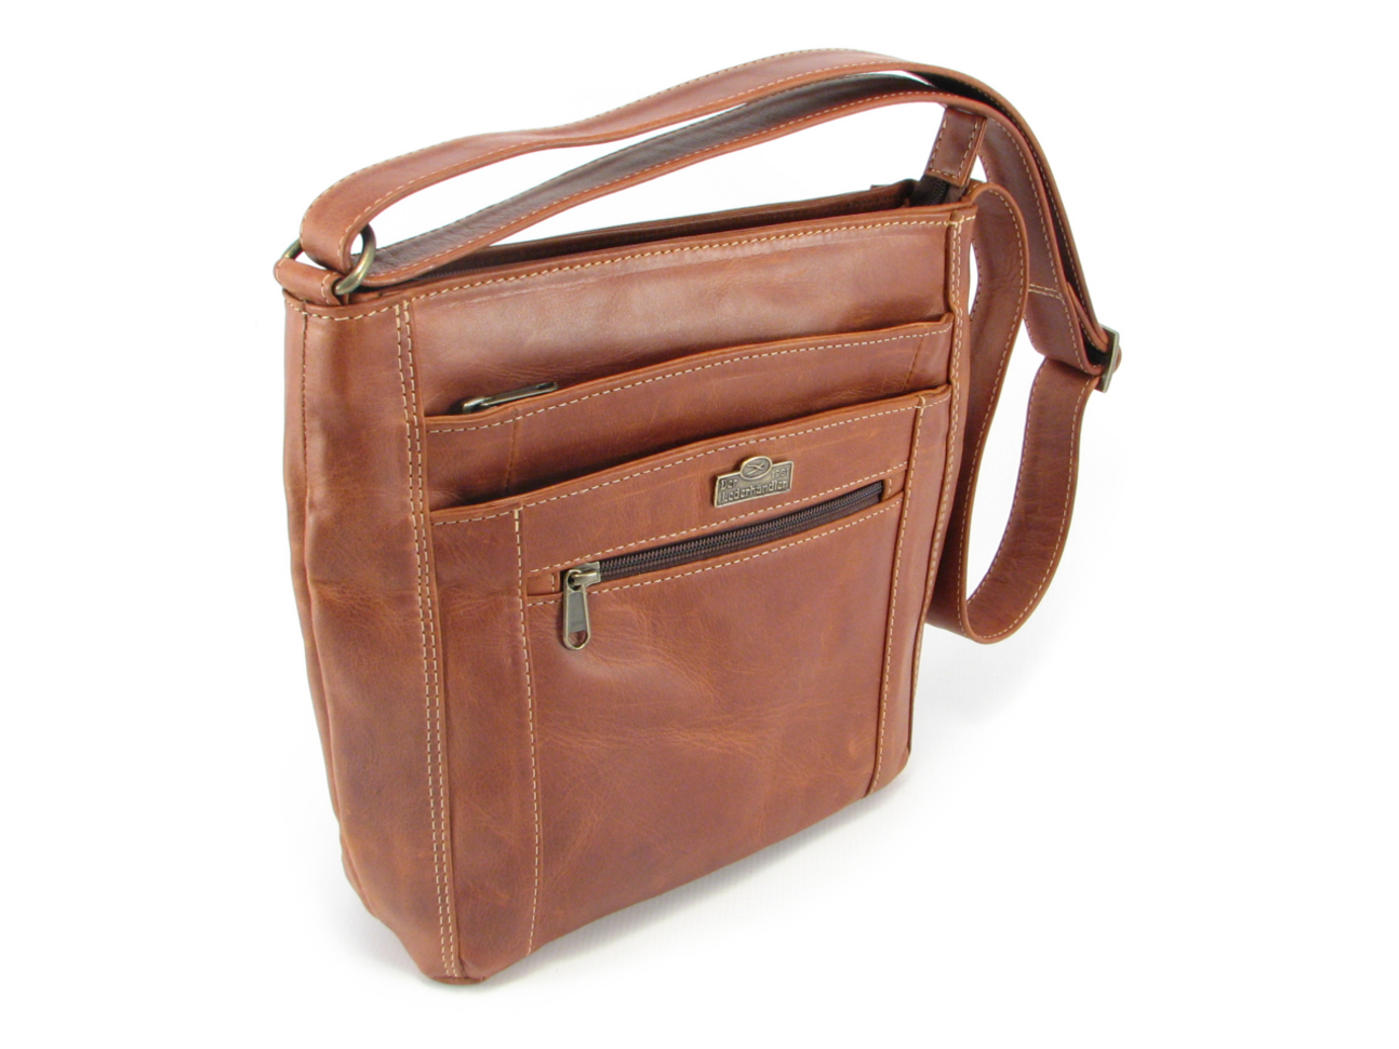 Lynette HP7214. Home   Leather Accessories Online   Leather Bags   Leather  Bags for Women   ... d58192188